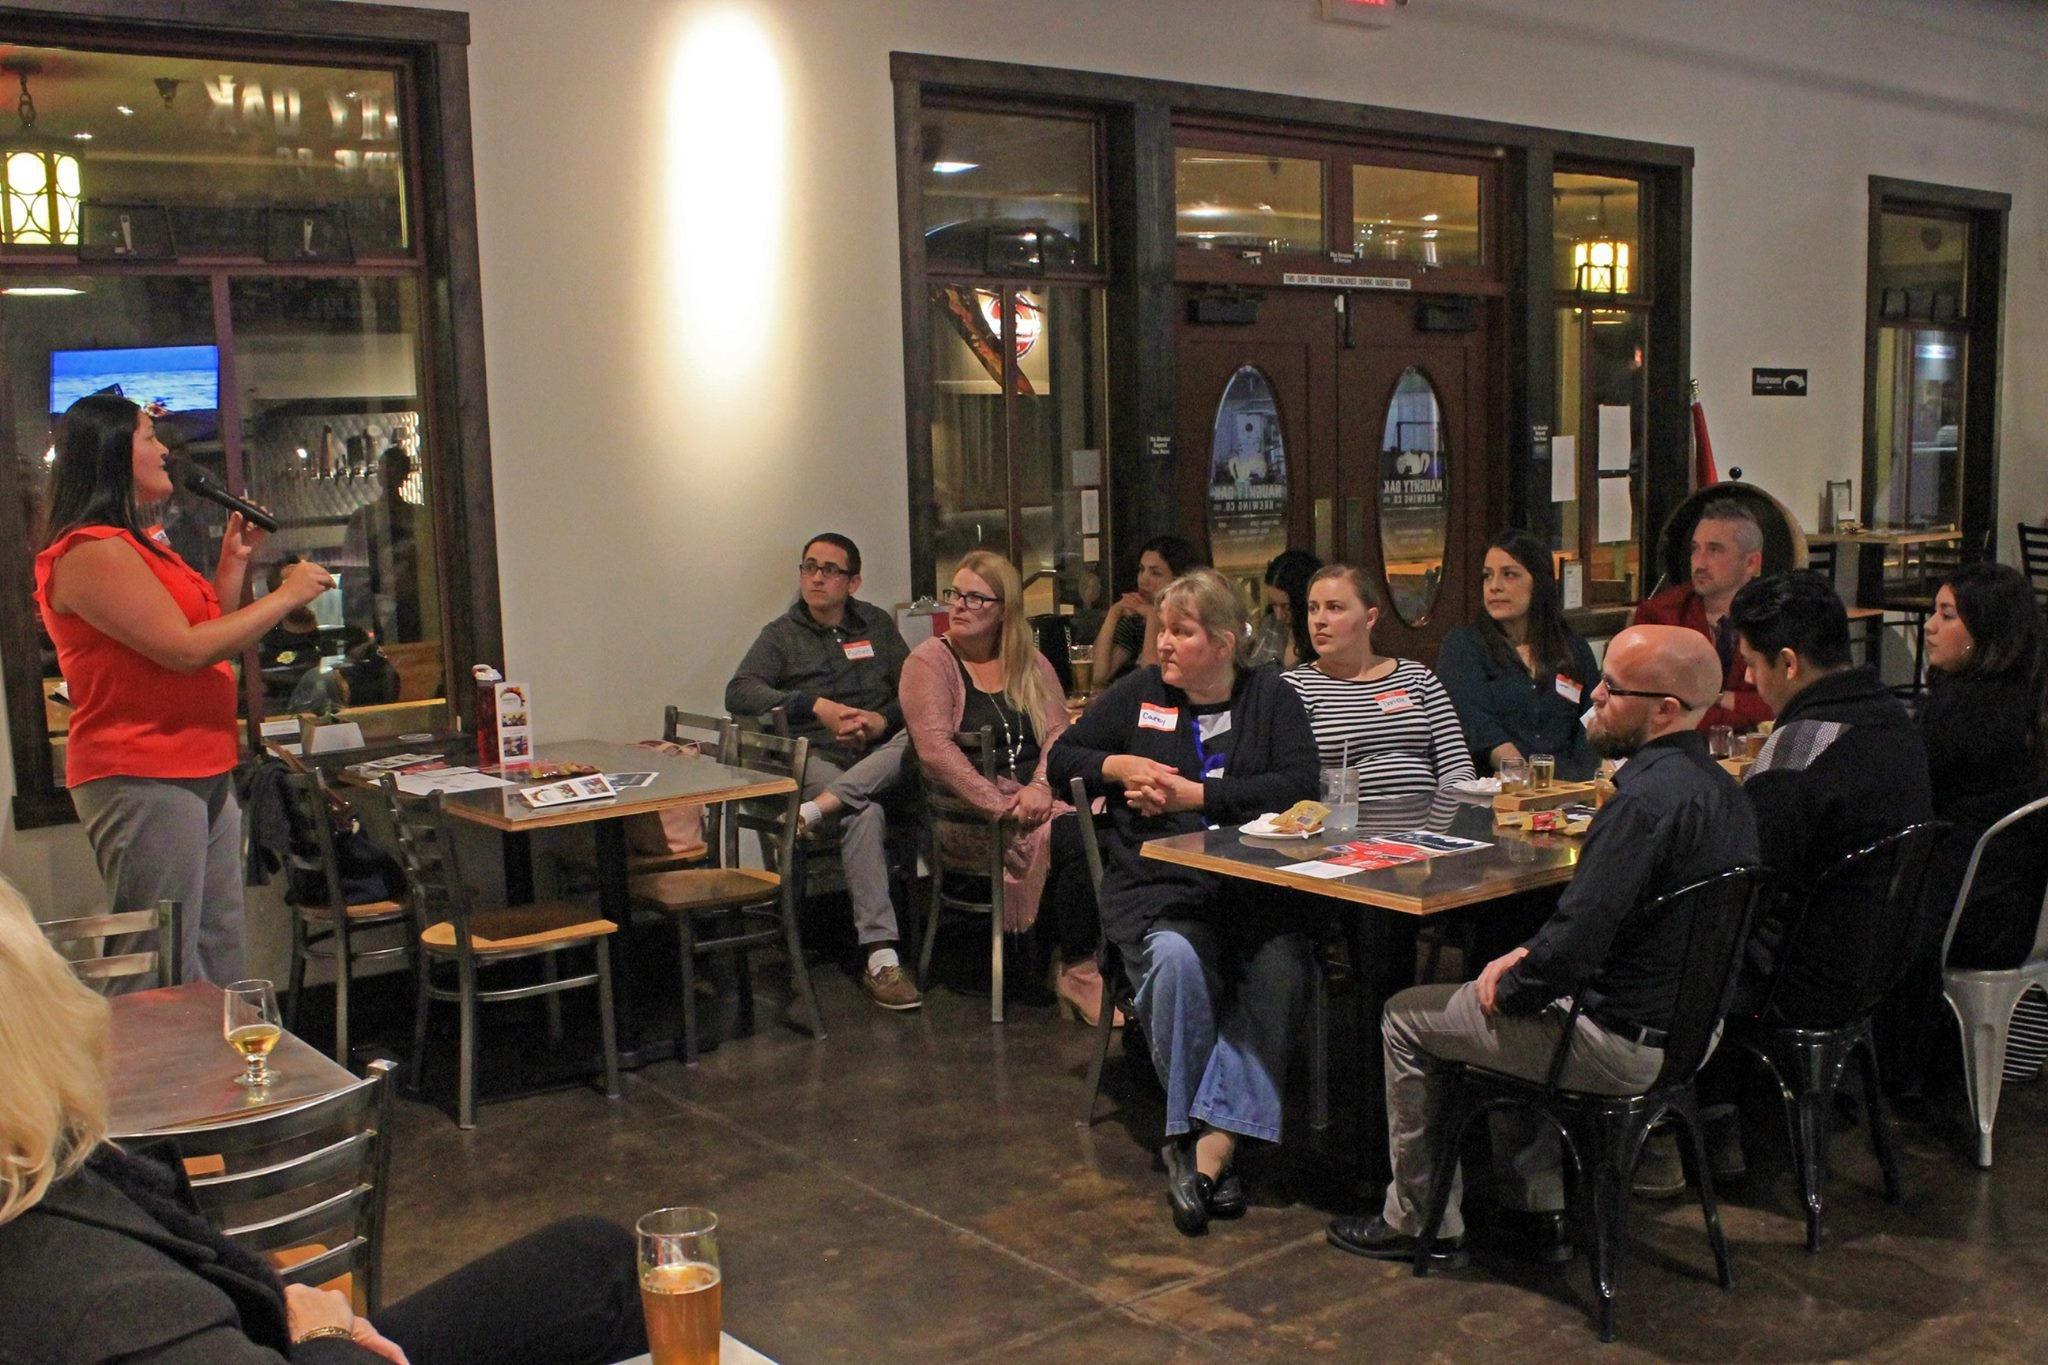 Santa Maria Connect! meets once a month in a different location to help one another brainstorm new ideas. (Photo courtesy of the Santa Maria Valley Chamber of Commerce)